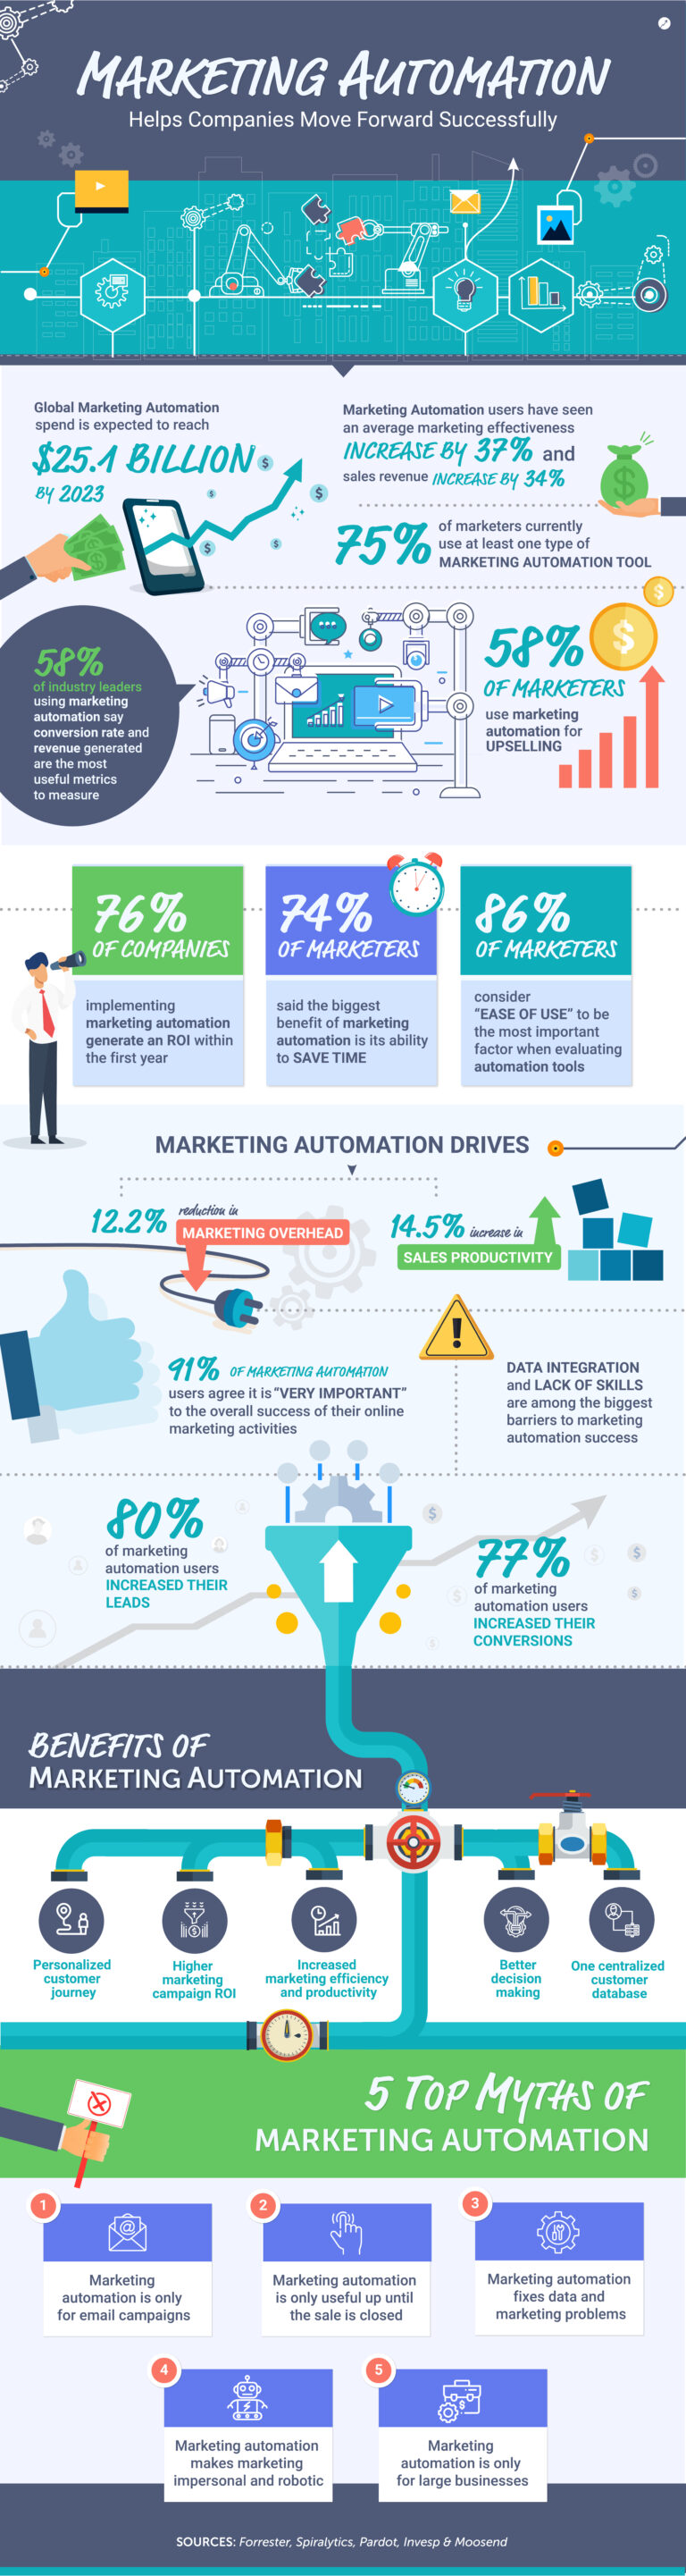 Marketing automation helps companies move forward infographic